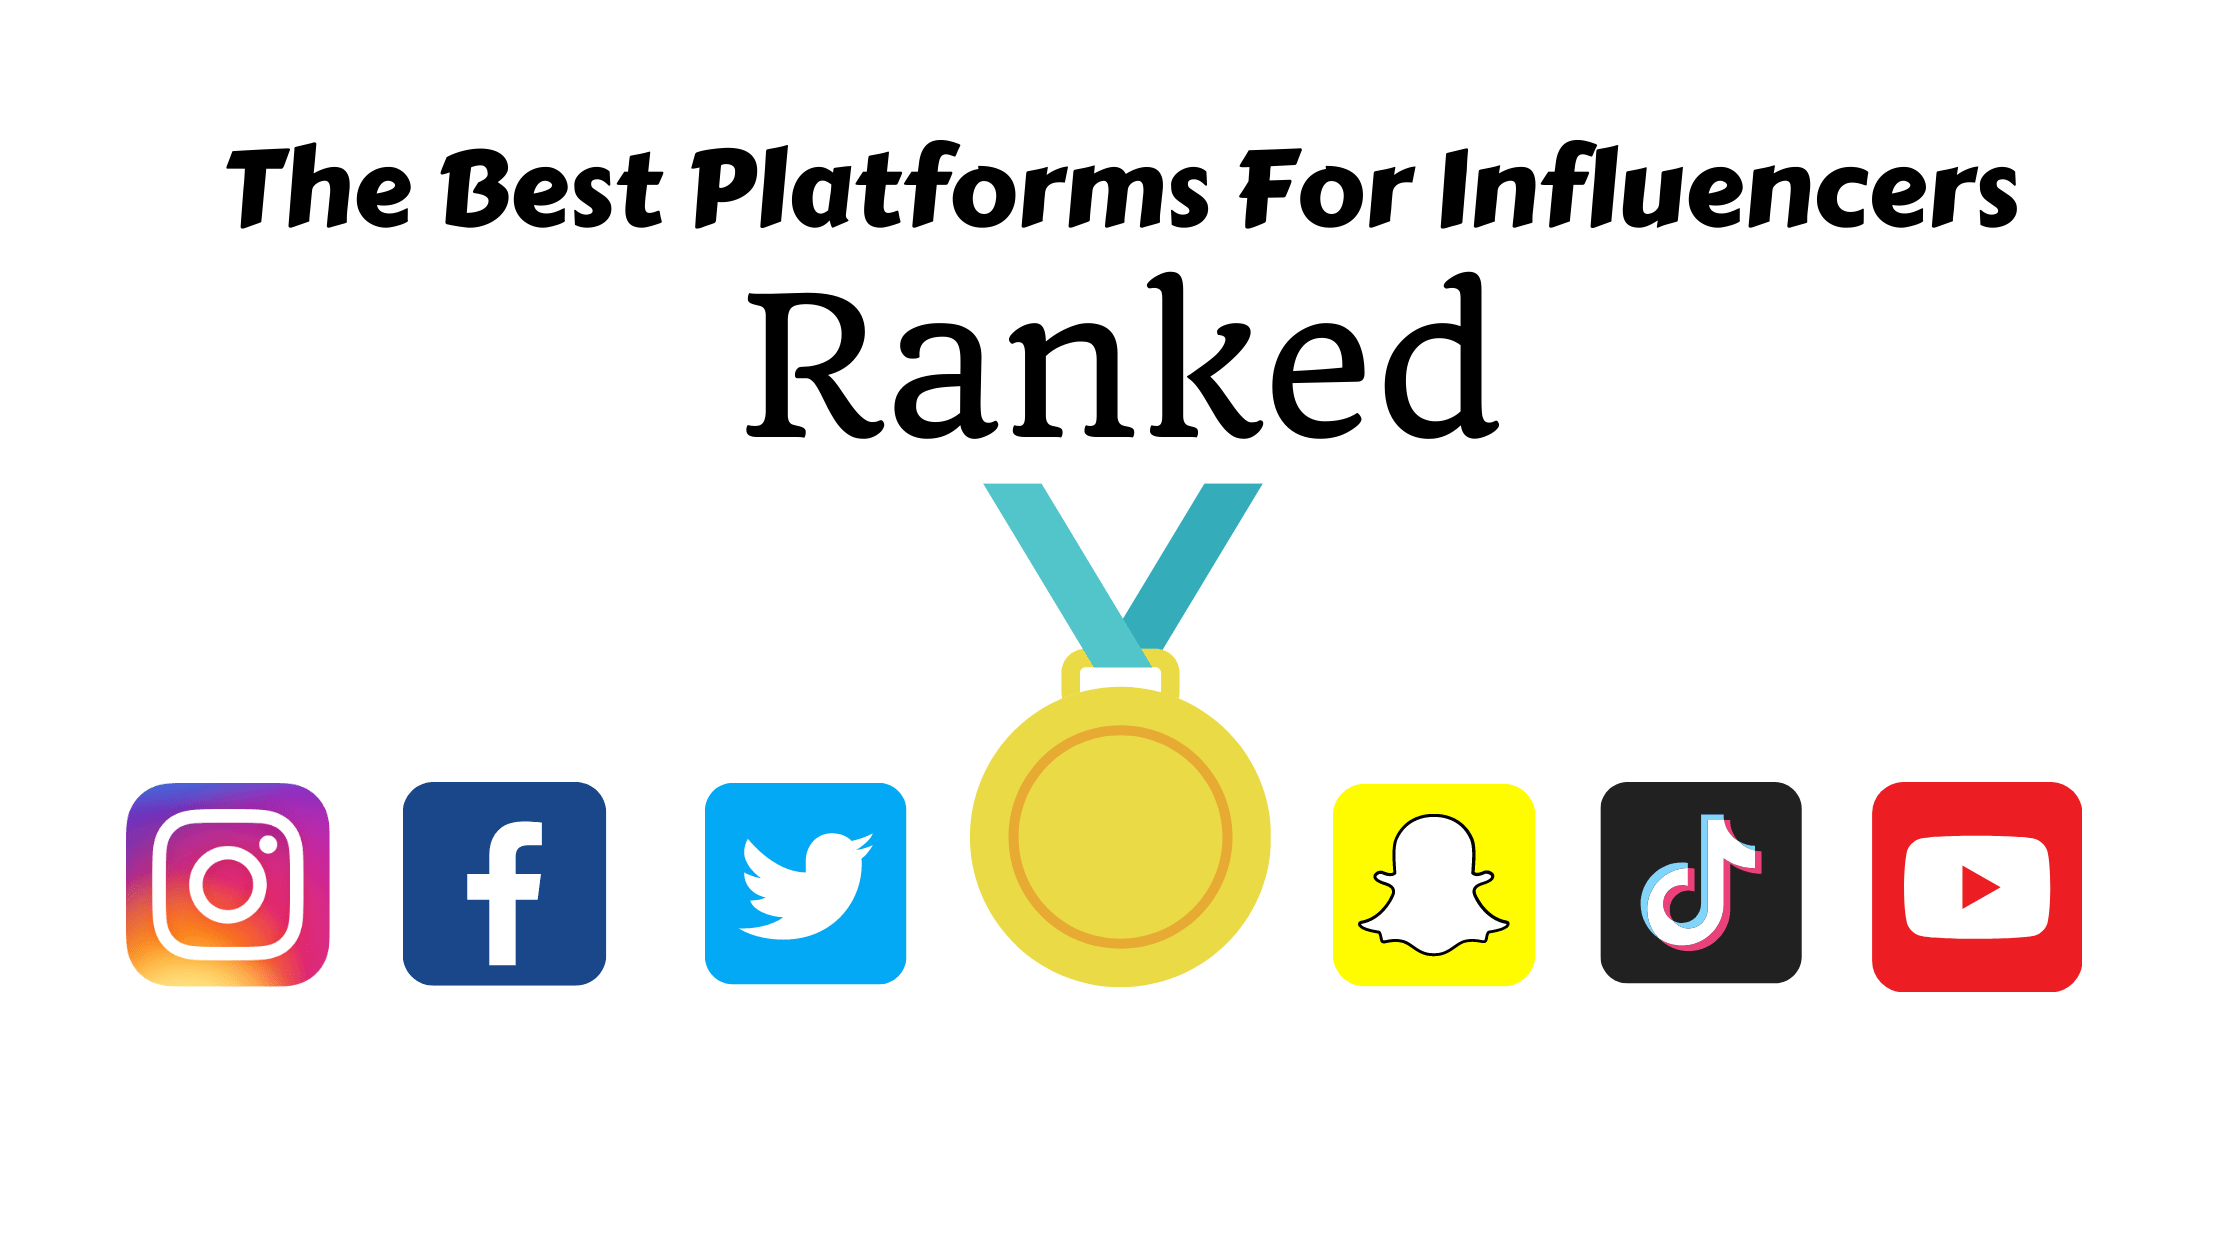 The Best Platforms For Influencers Ranked